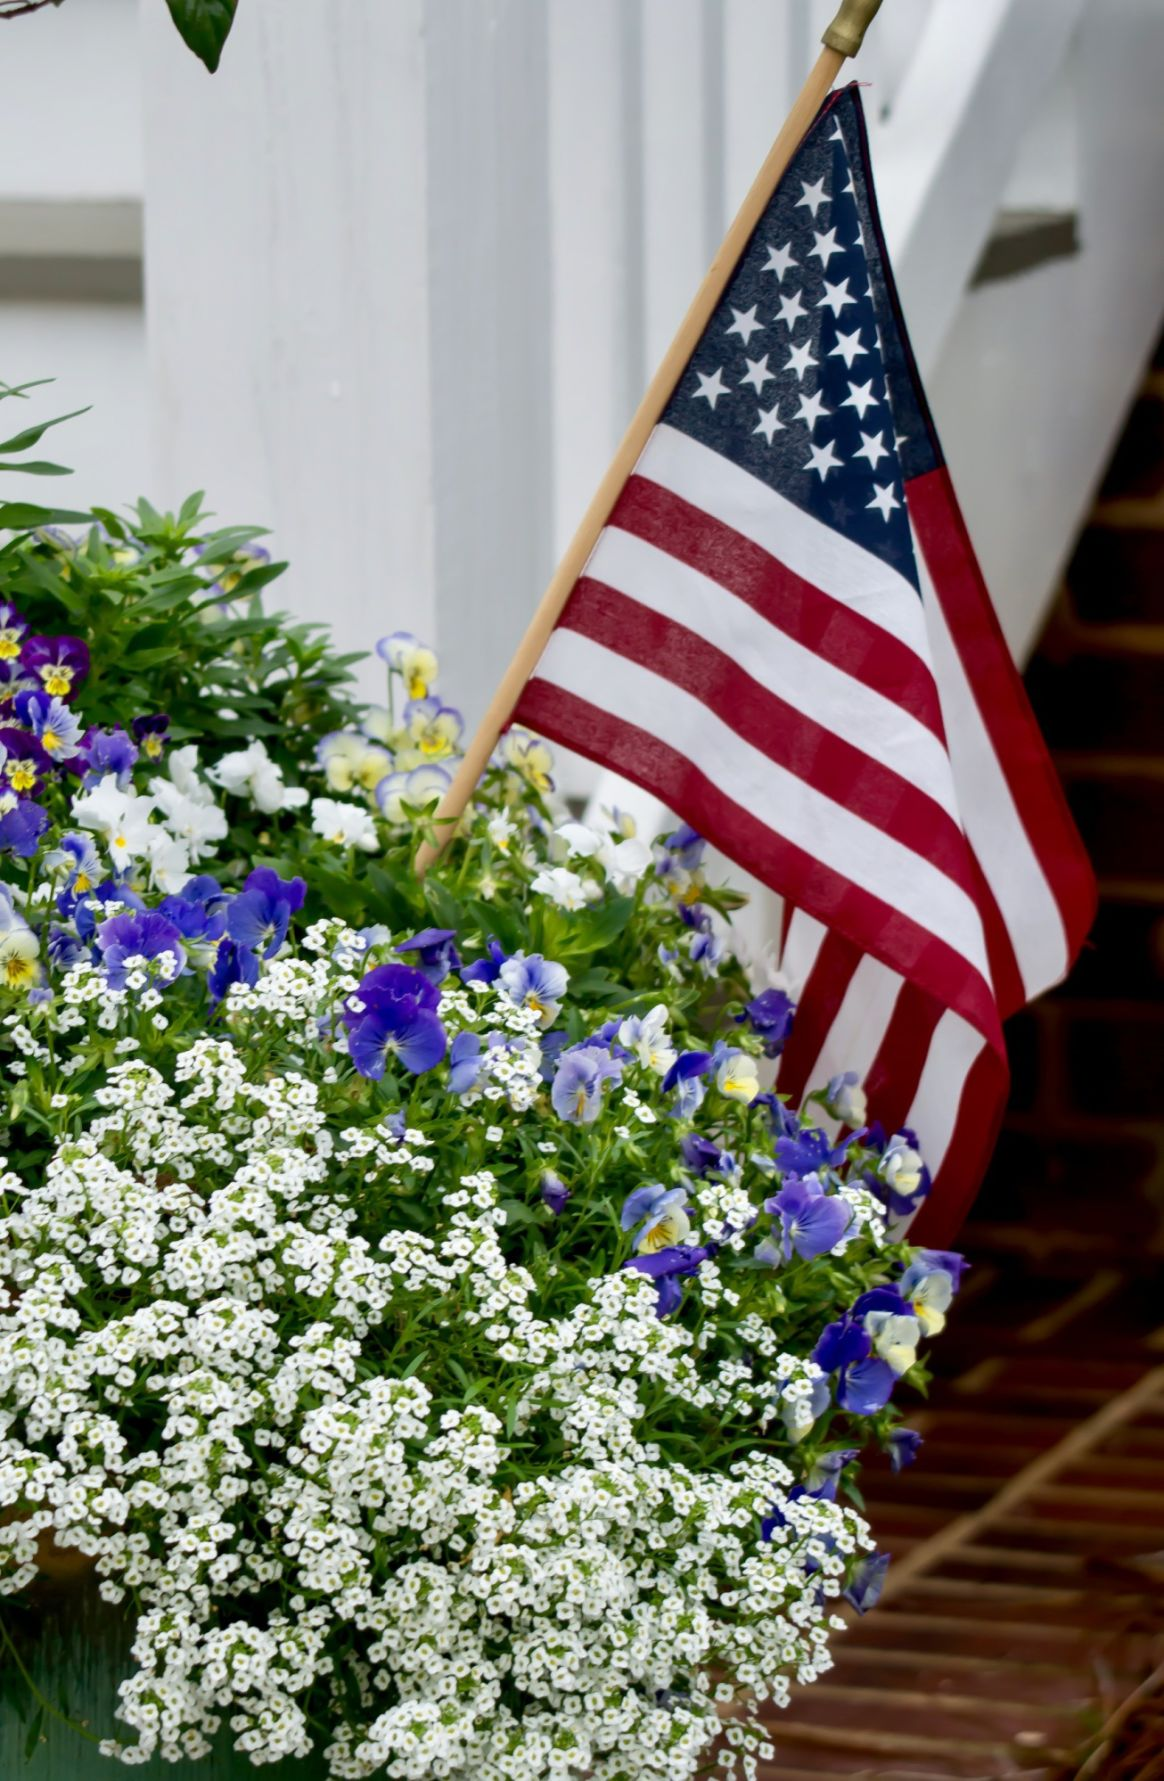 'OLD GLORY' COLORS shine in 2020